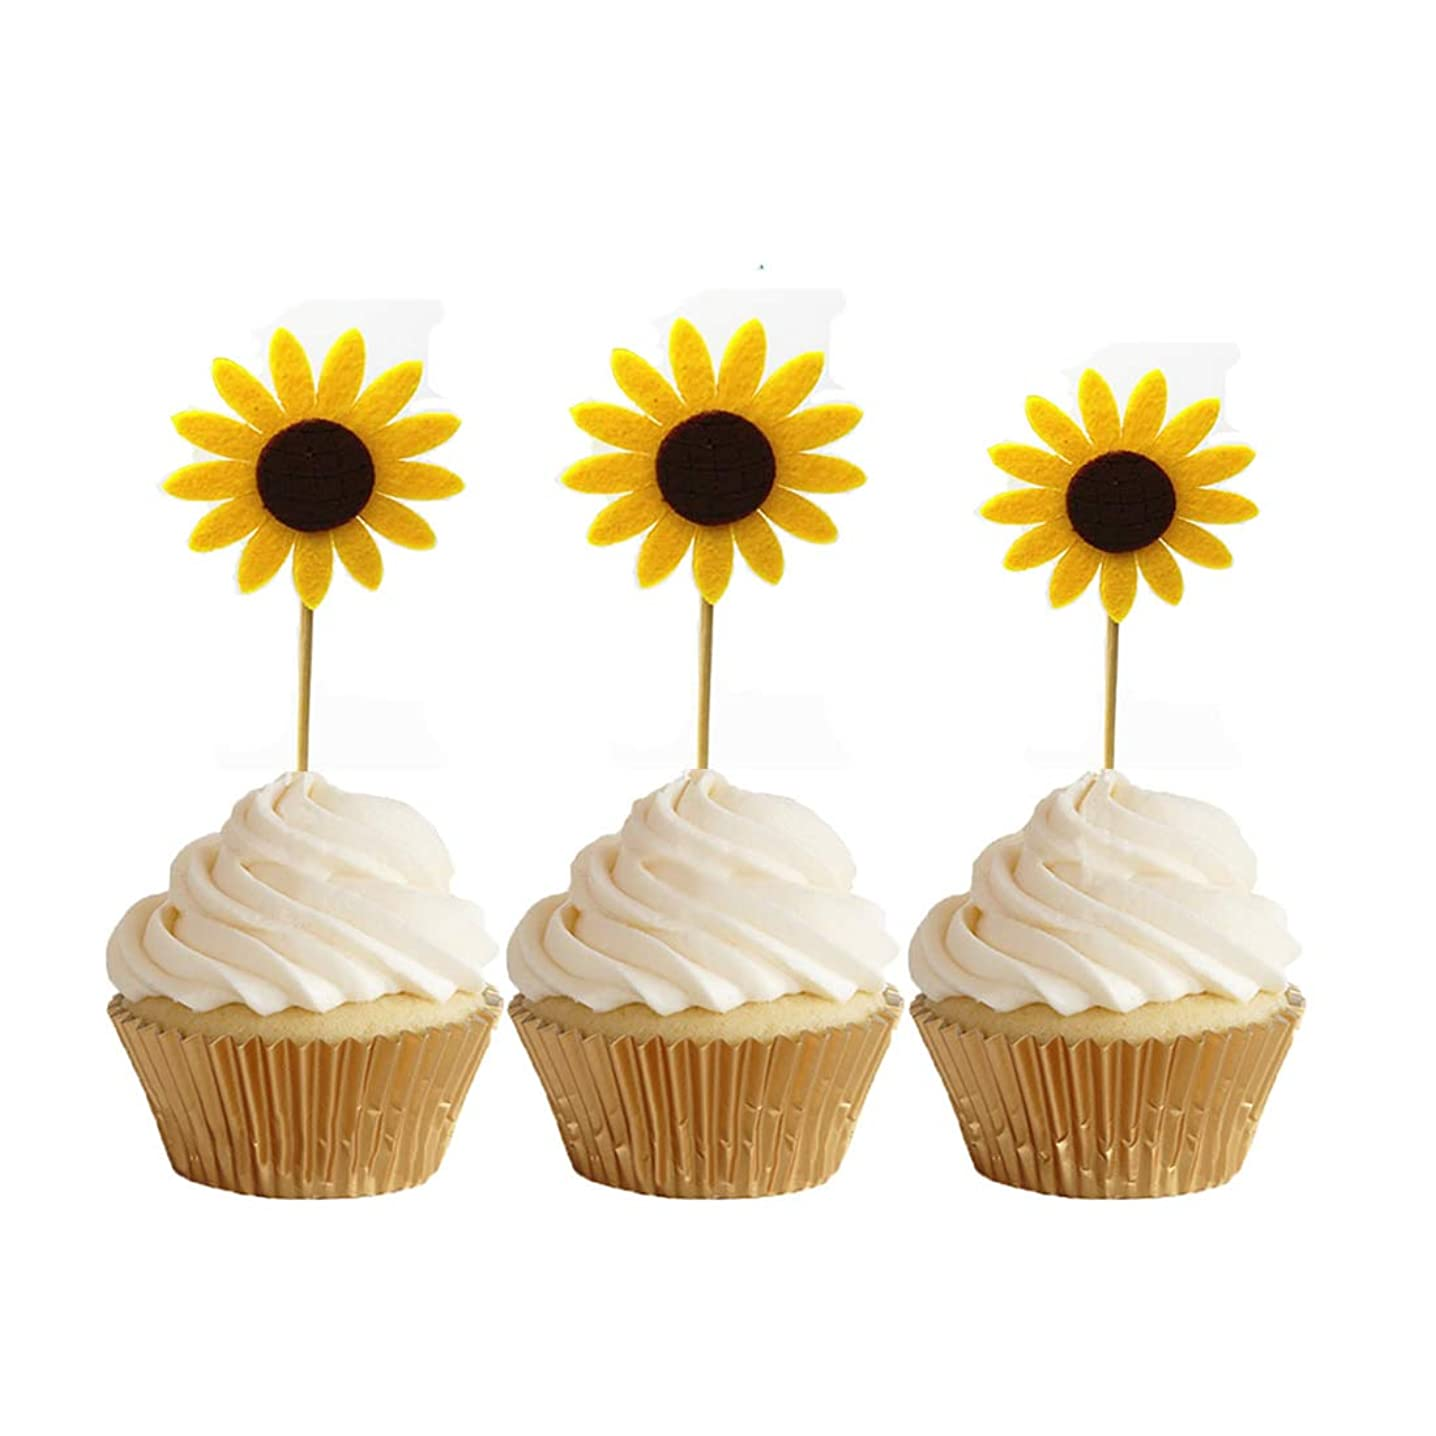 GEORLD 24pcs Sunflower Cupcake Toppers Party Picks Cake Sun Flower Decoration